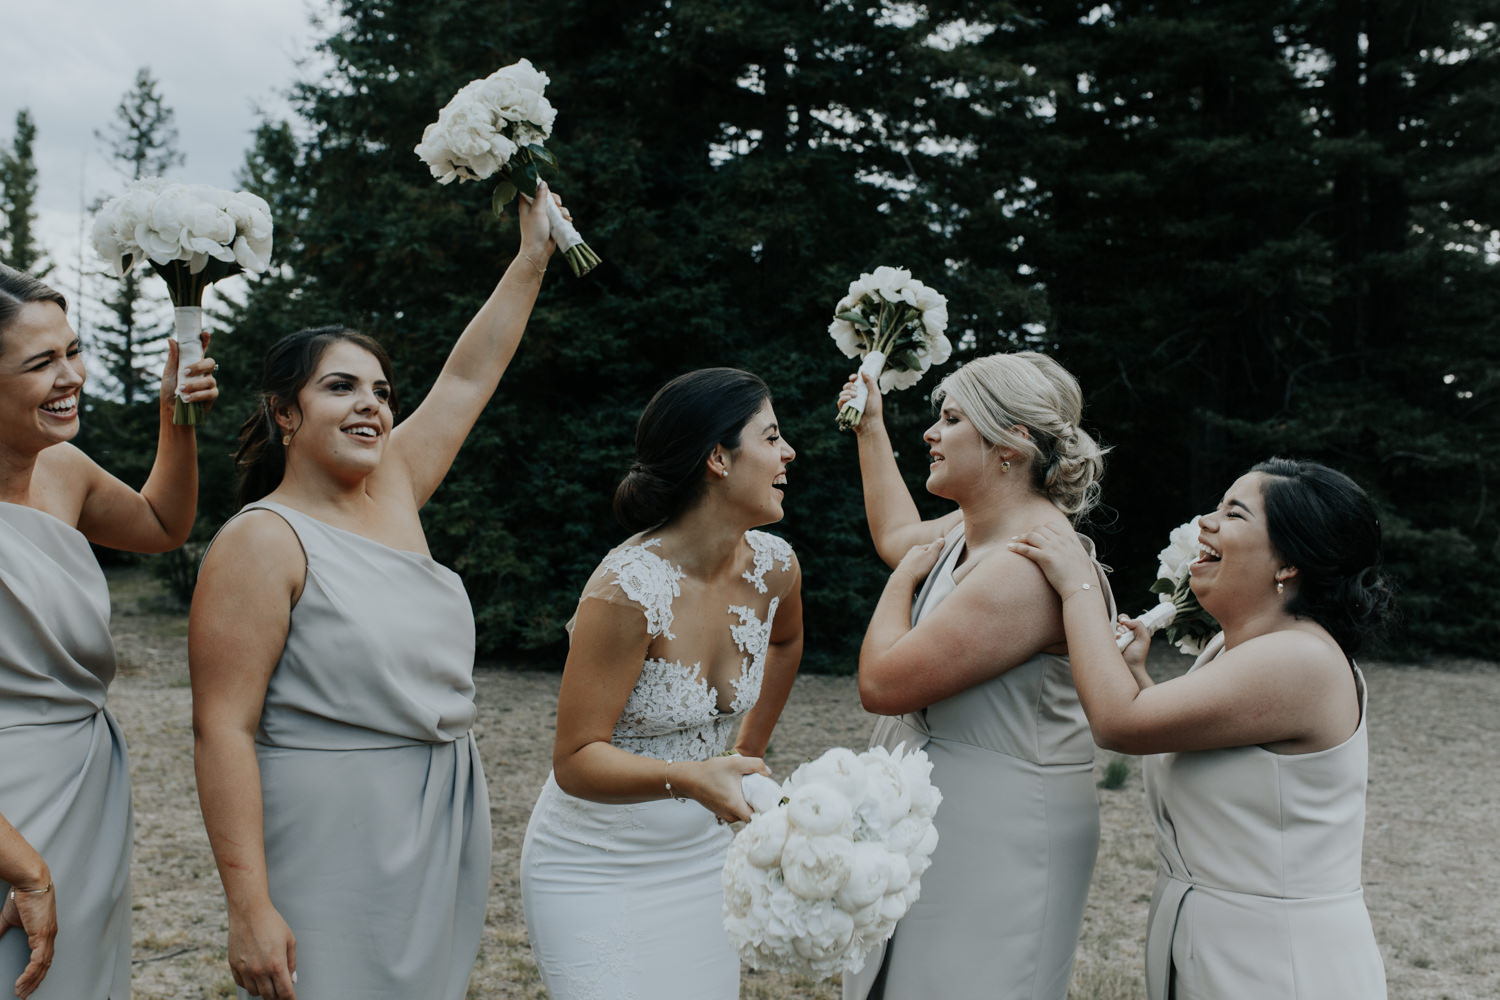 Fitters' Workshop Wedding Canberra - Piallago Forest Portraits / Capital Flowers Canberra/ by Jenny Wu Straight No Chaser Photography